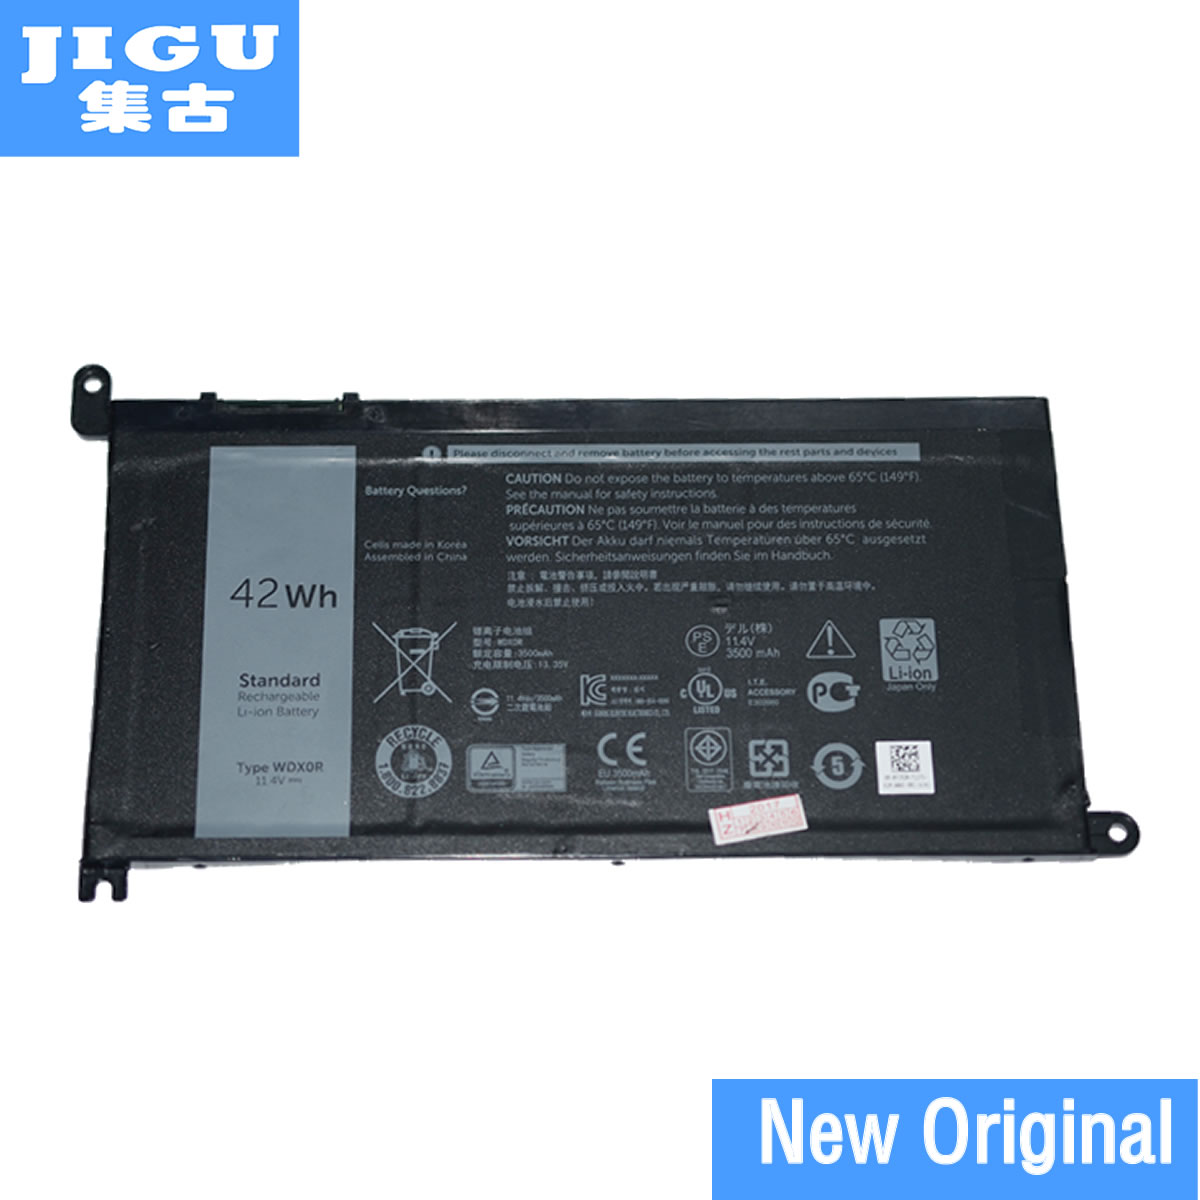 JIGU Original Laptop Battery 3CRH3 WDX0R T2JX4 WDXOR For DELL 15MF PRO-1508T For Inspiron 13 5000 5368 5378